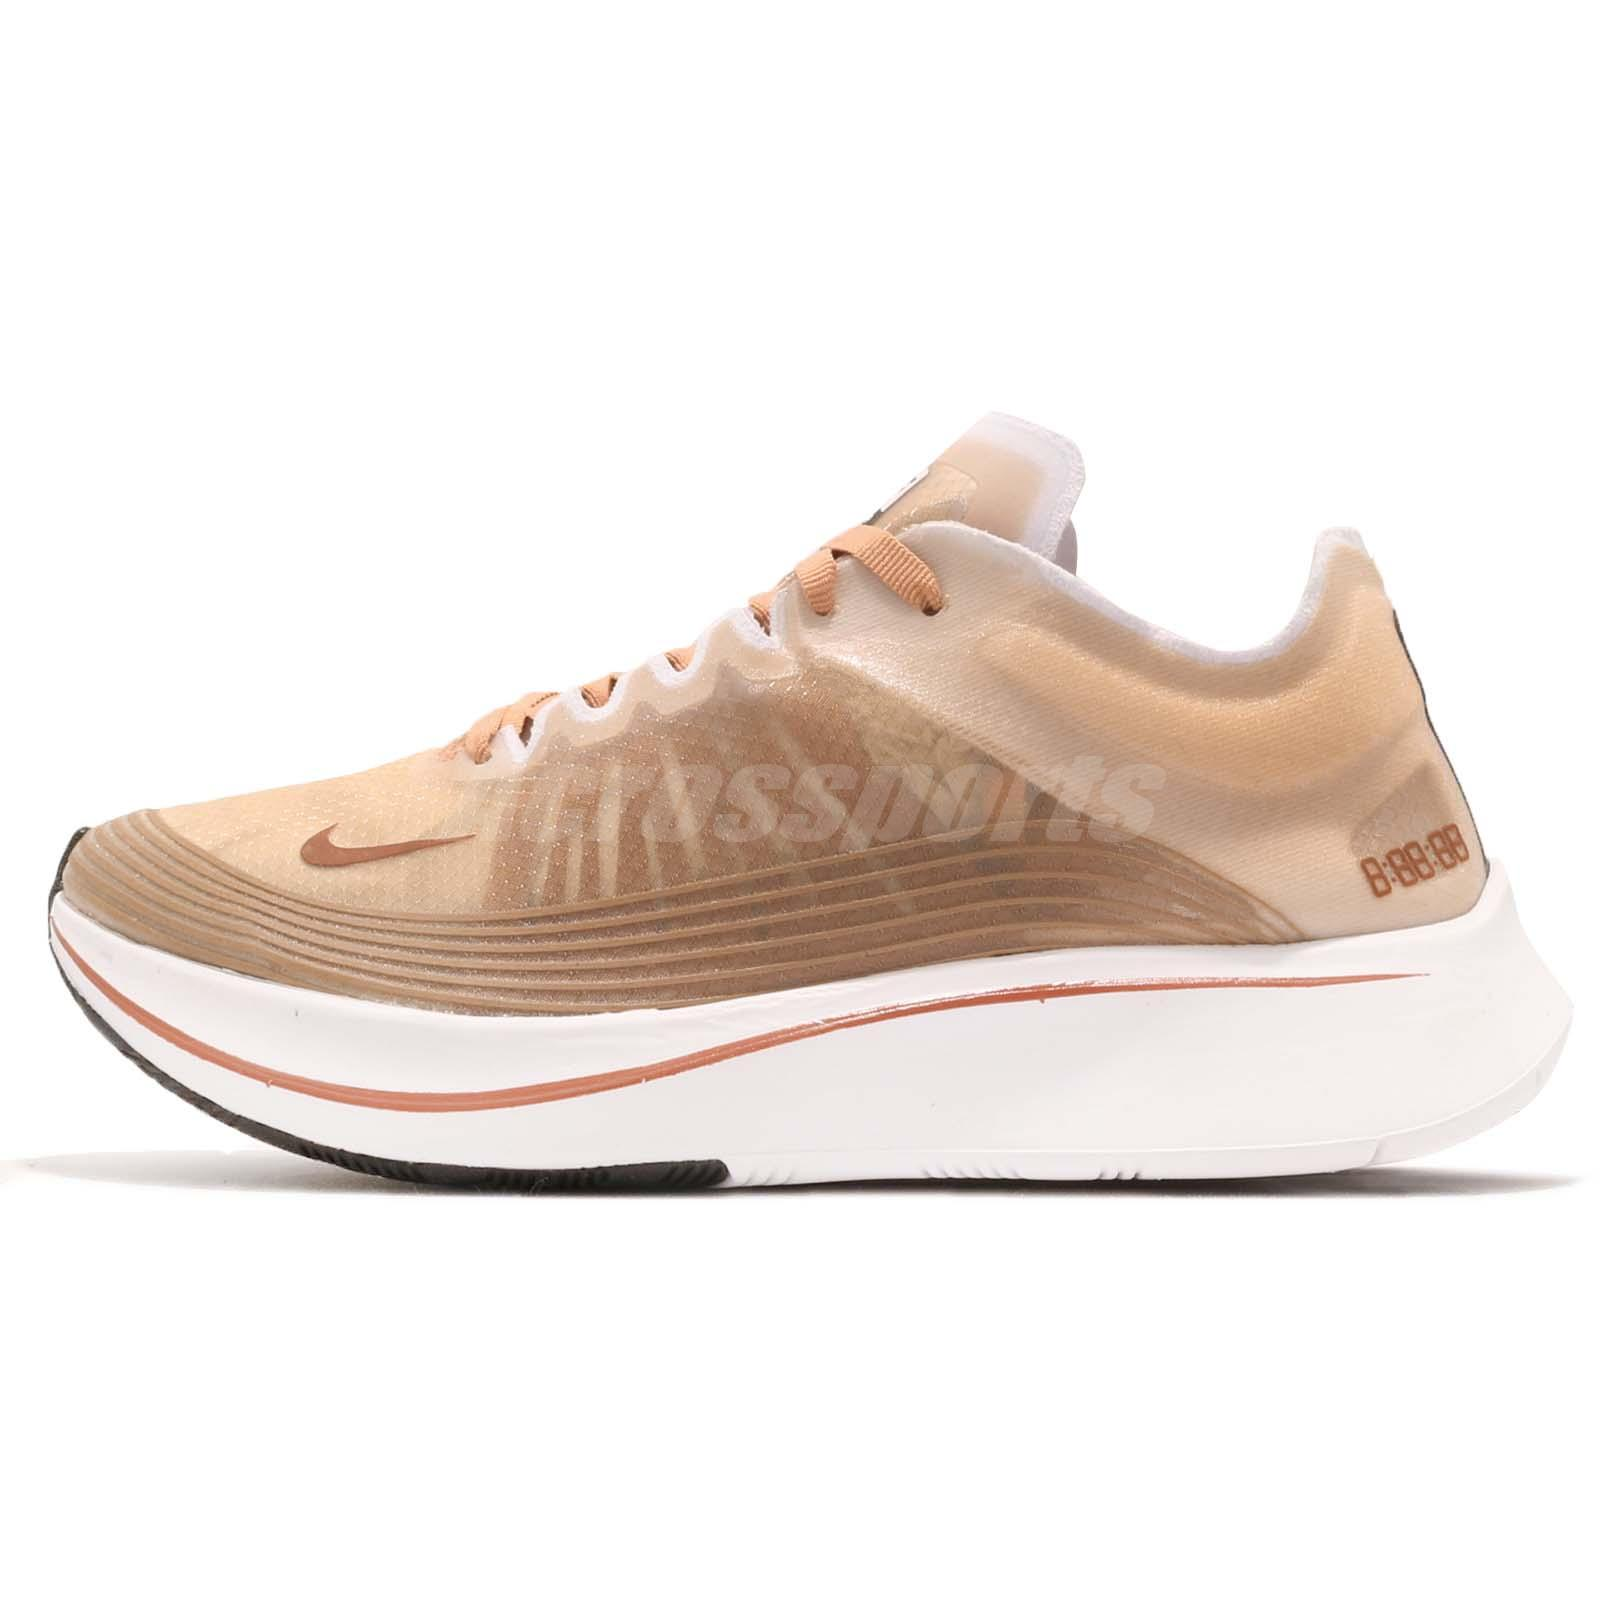 450117a29f6f Nike Wmns Zoom Fly SP Dusty Peach White Women Running Shoes Sneakers  AJ8229-200